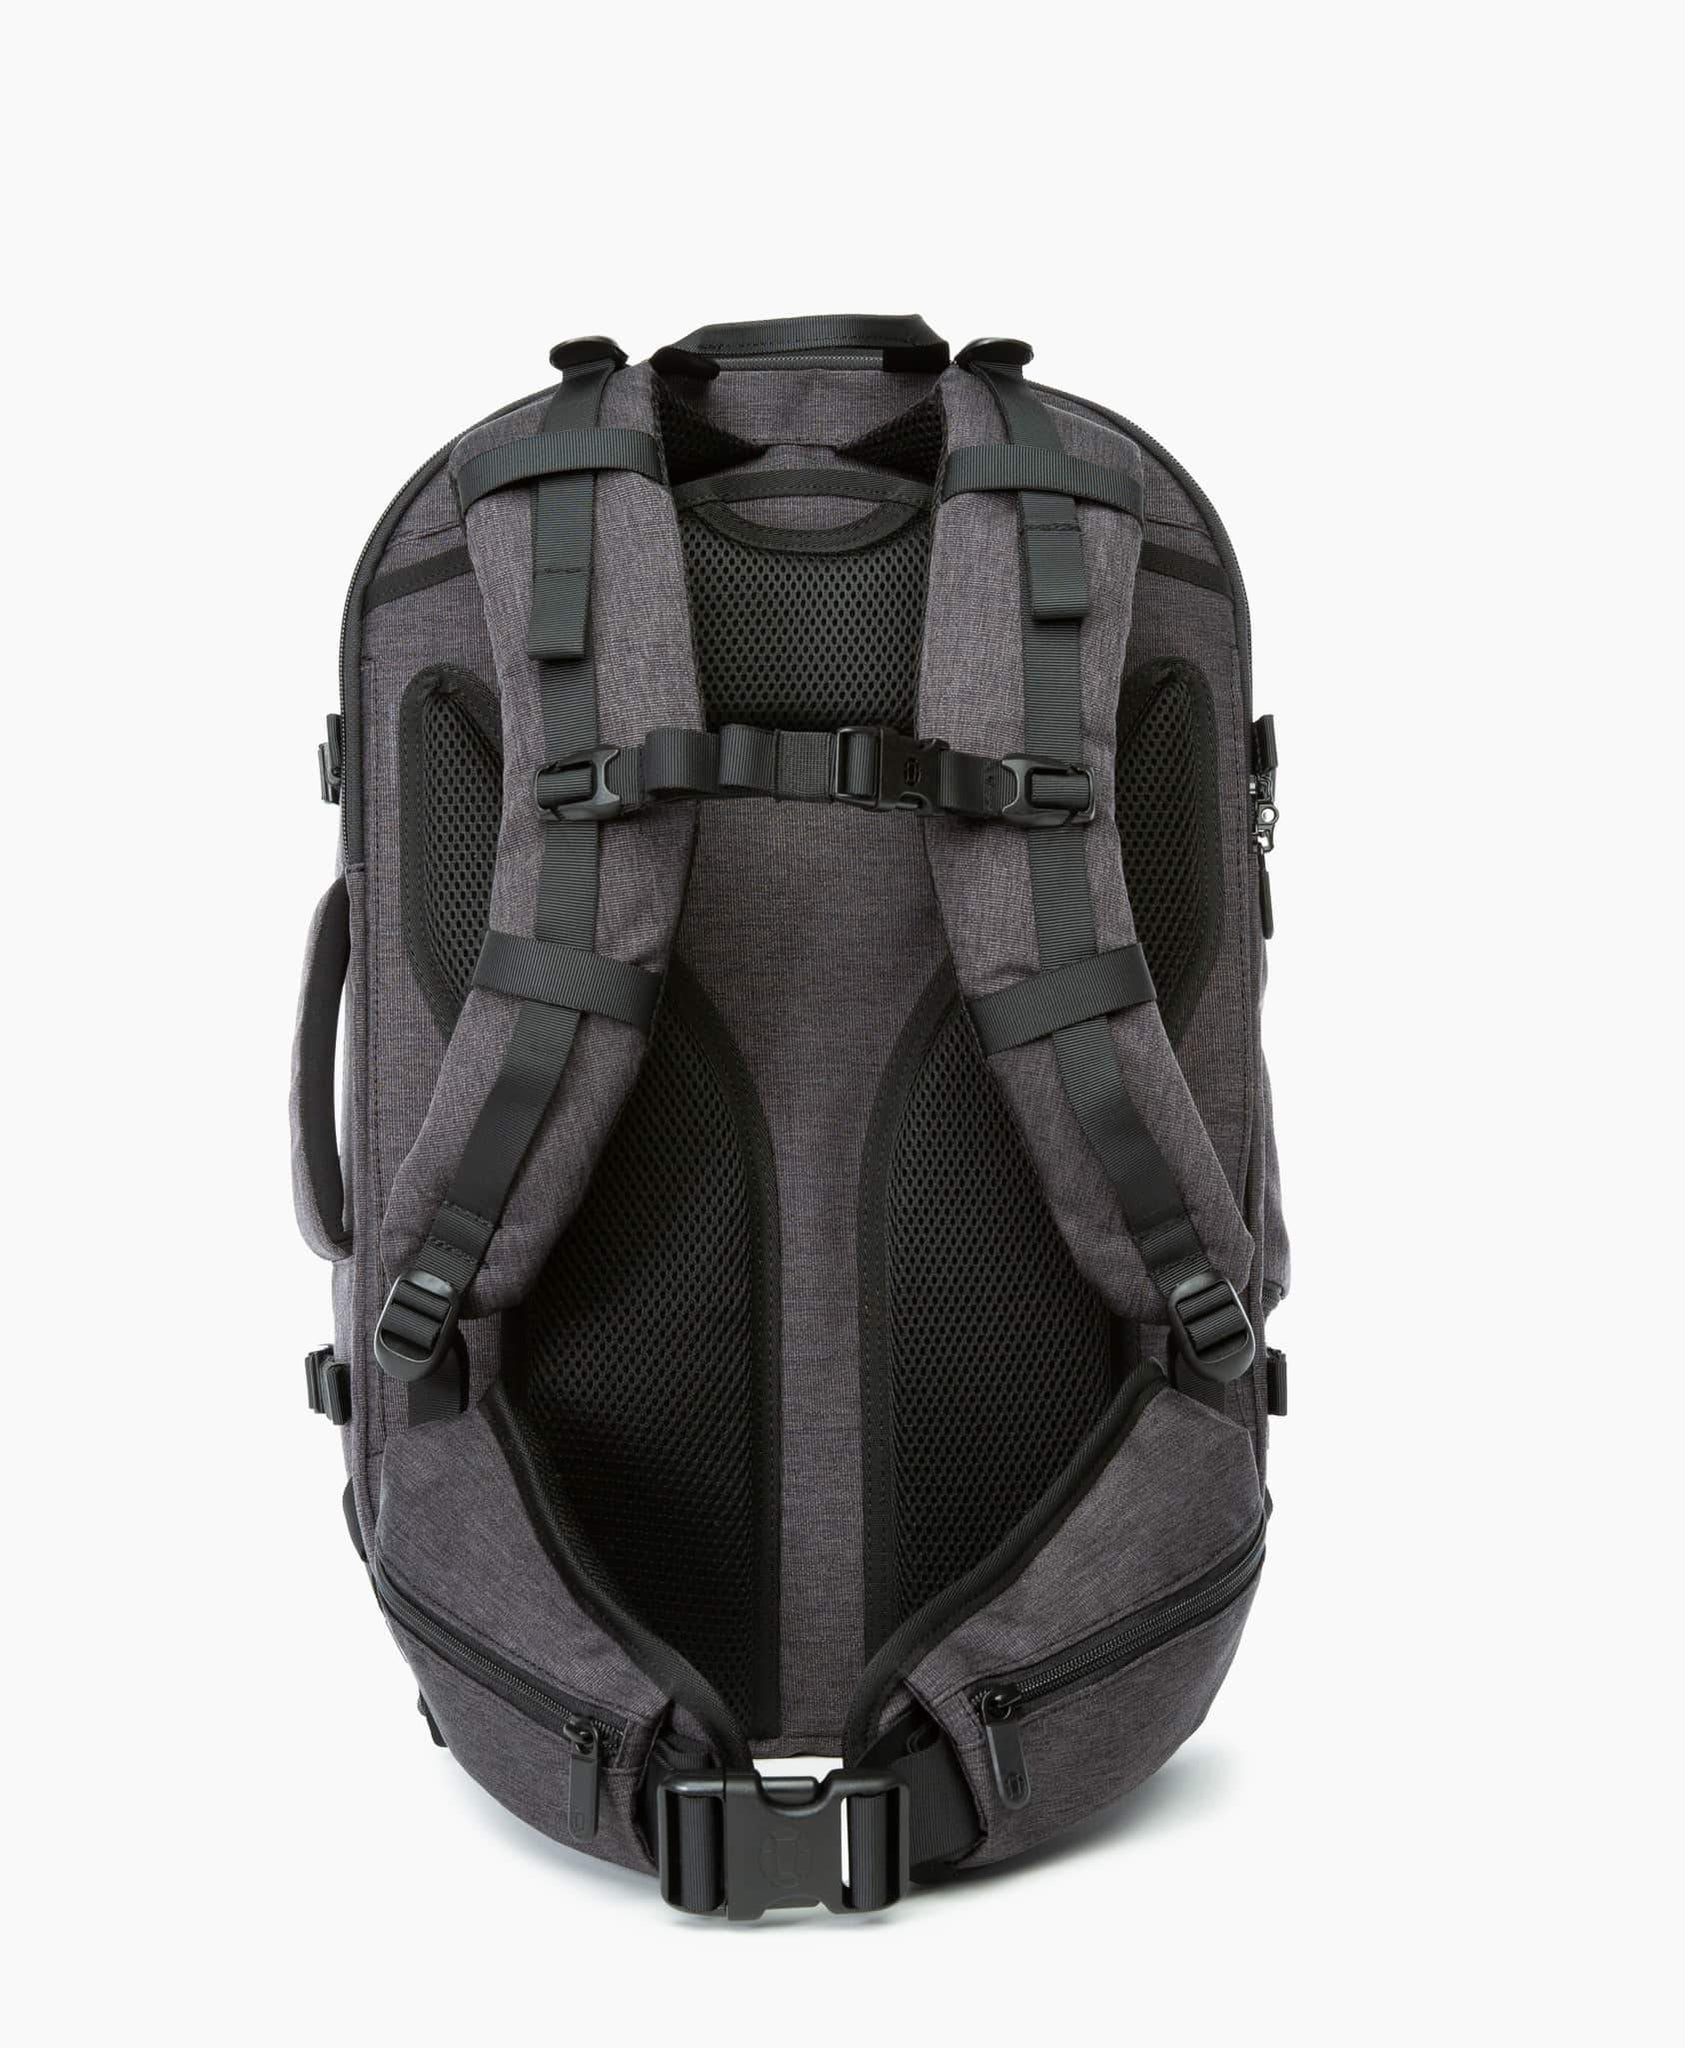 product/ Suspension system with a padded hip belt that transfers 80% of the bag's weight away from your shoulders